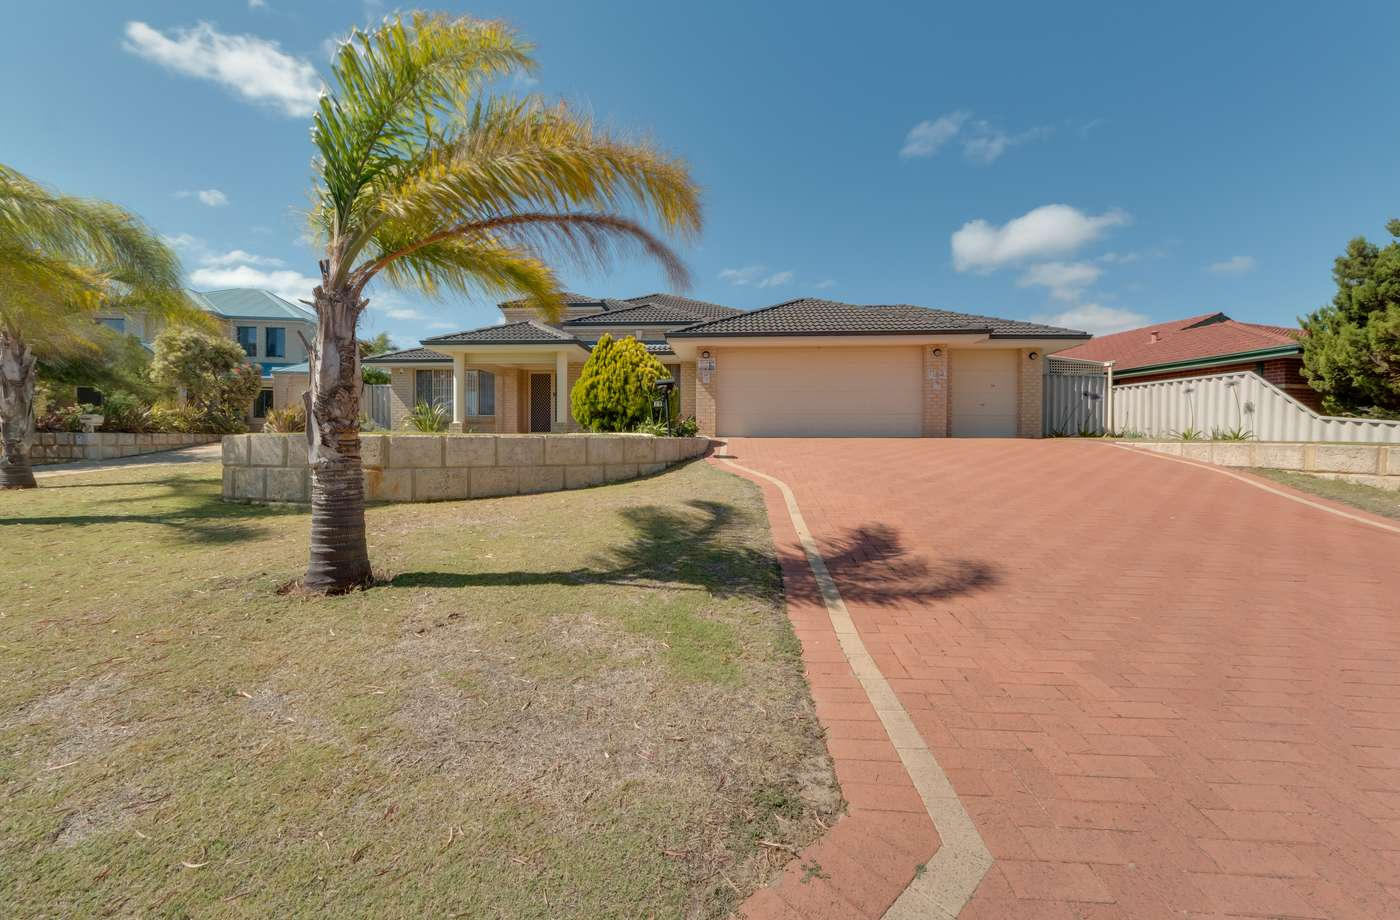 Main view of Homely house listing, 28 Le Mans Elbow, Port Kennedy, WA 6172